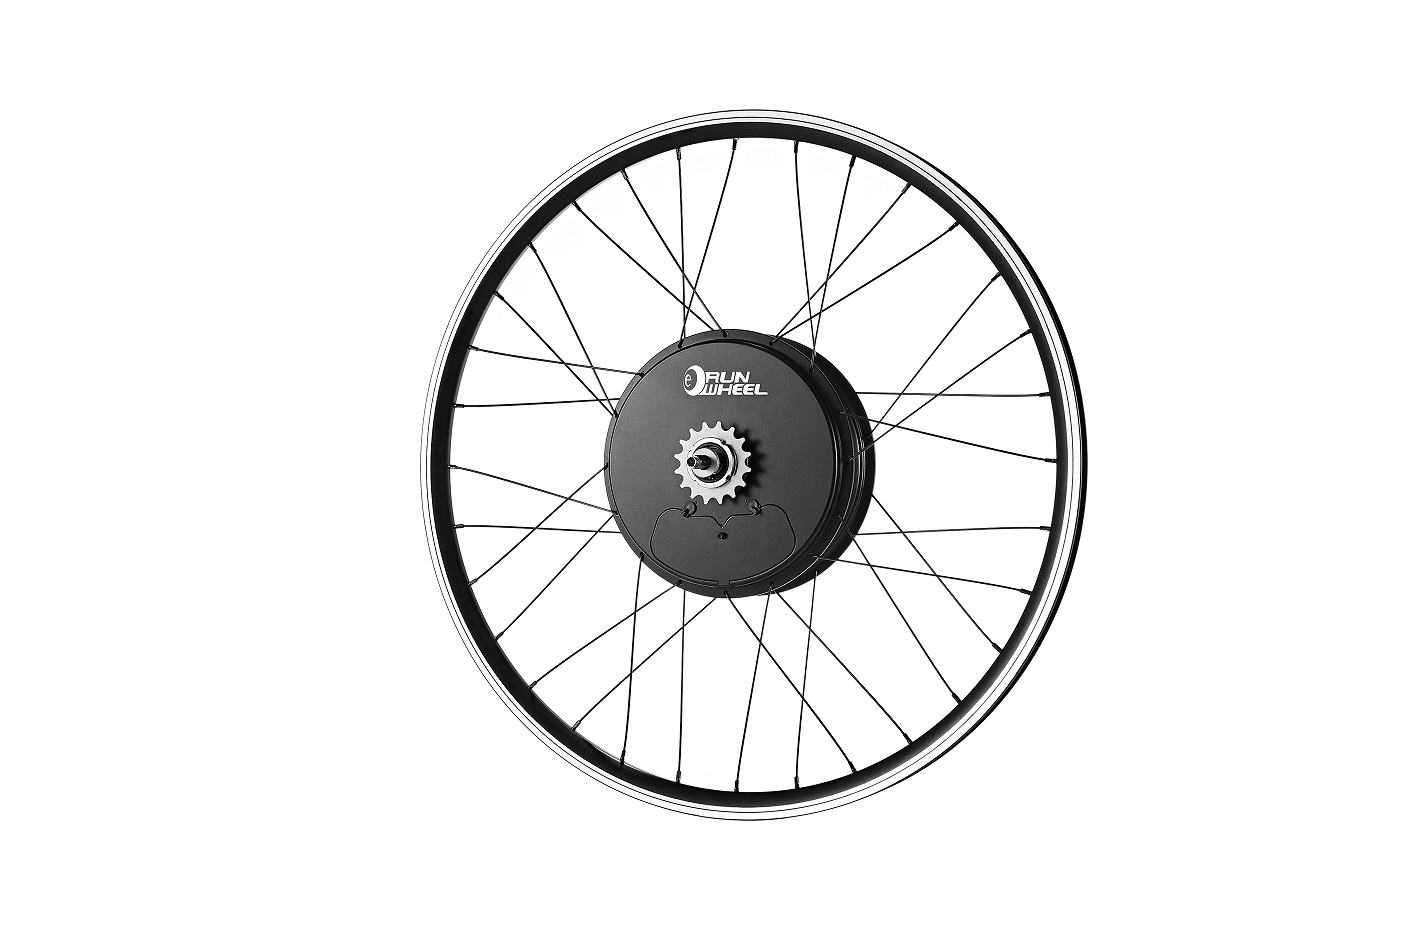 ebike hub motor, electric bike wireless all in one rear hub motor wheel